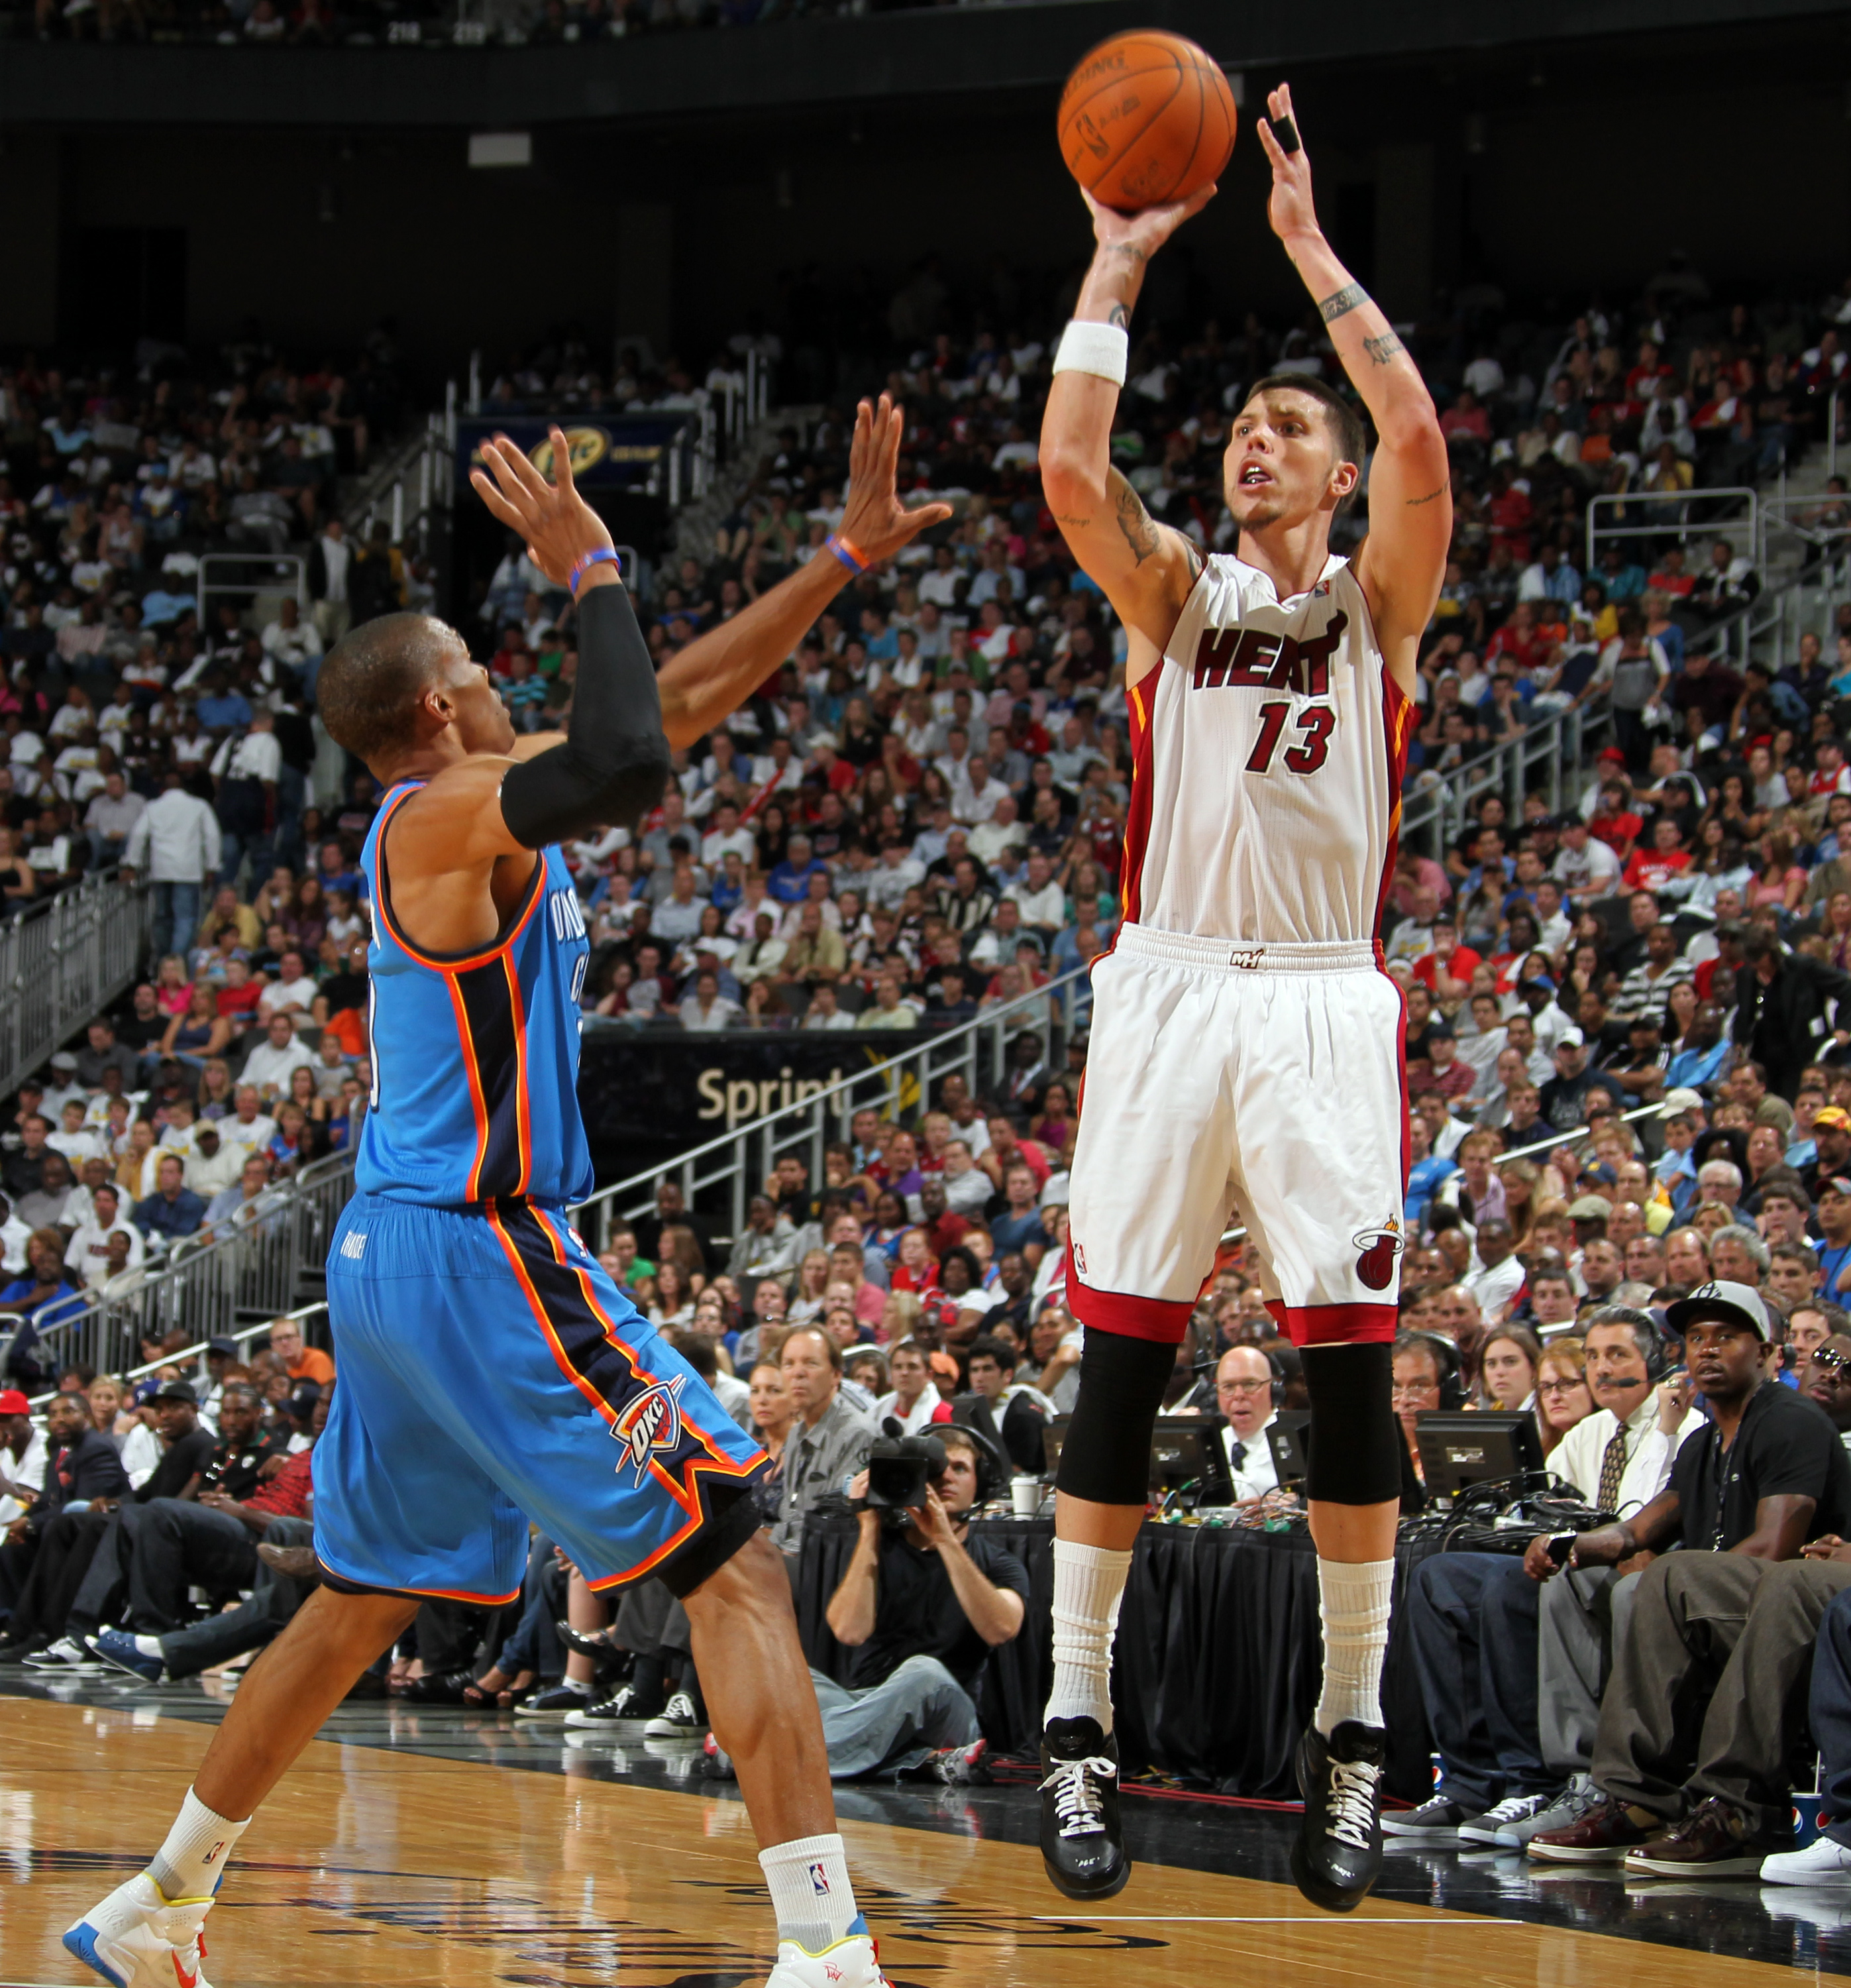 KANSAS CITY, MO - OCTOBER 8: Mike Miller #13 of the Miami Heat shoots a jumpshot over Thabo Sefolosha #2 of the Oklahoma City Thunder on October 8, 2010 at the Sprint Center in Kansas City, Missouri.  NOTE TO USER: User expressly acknowledges and agrees t